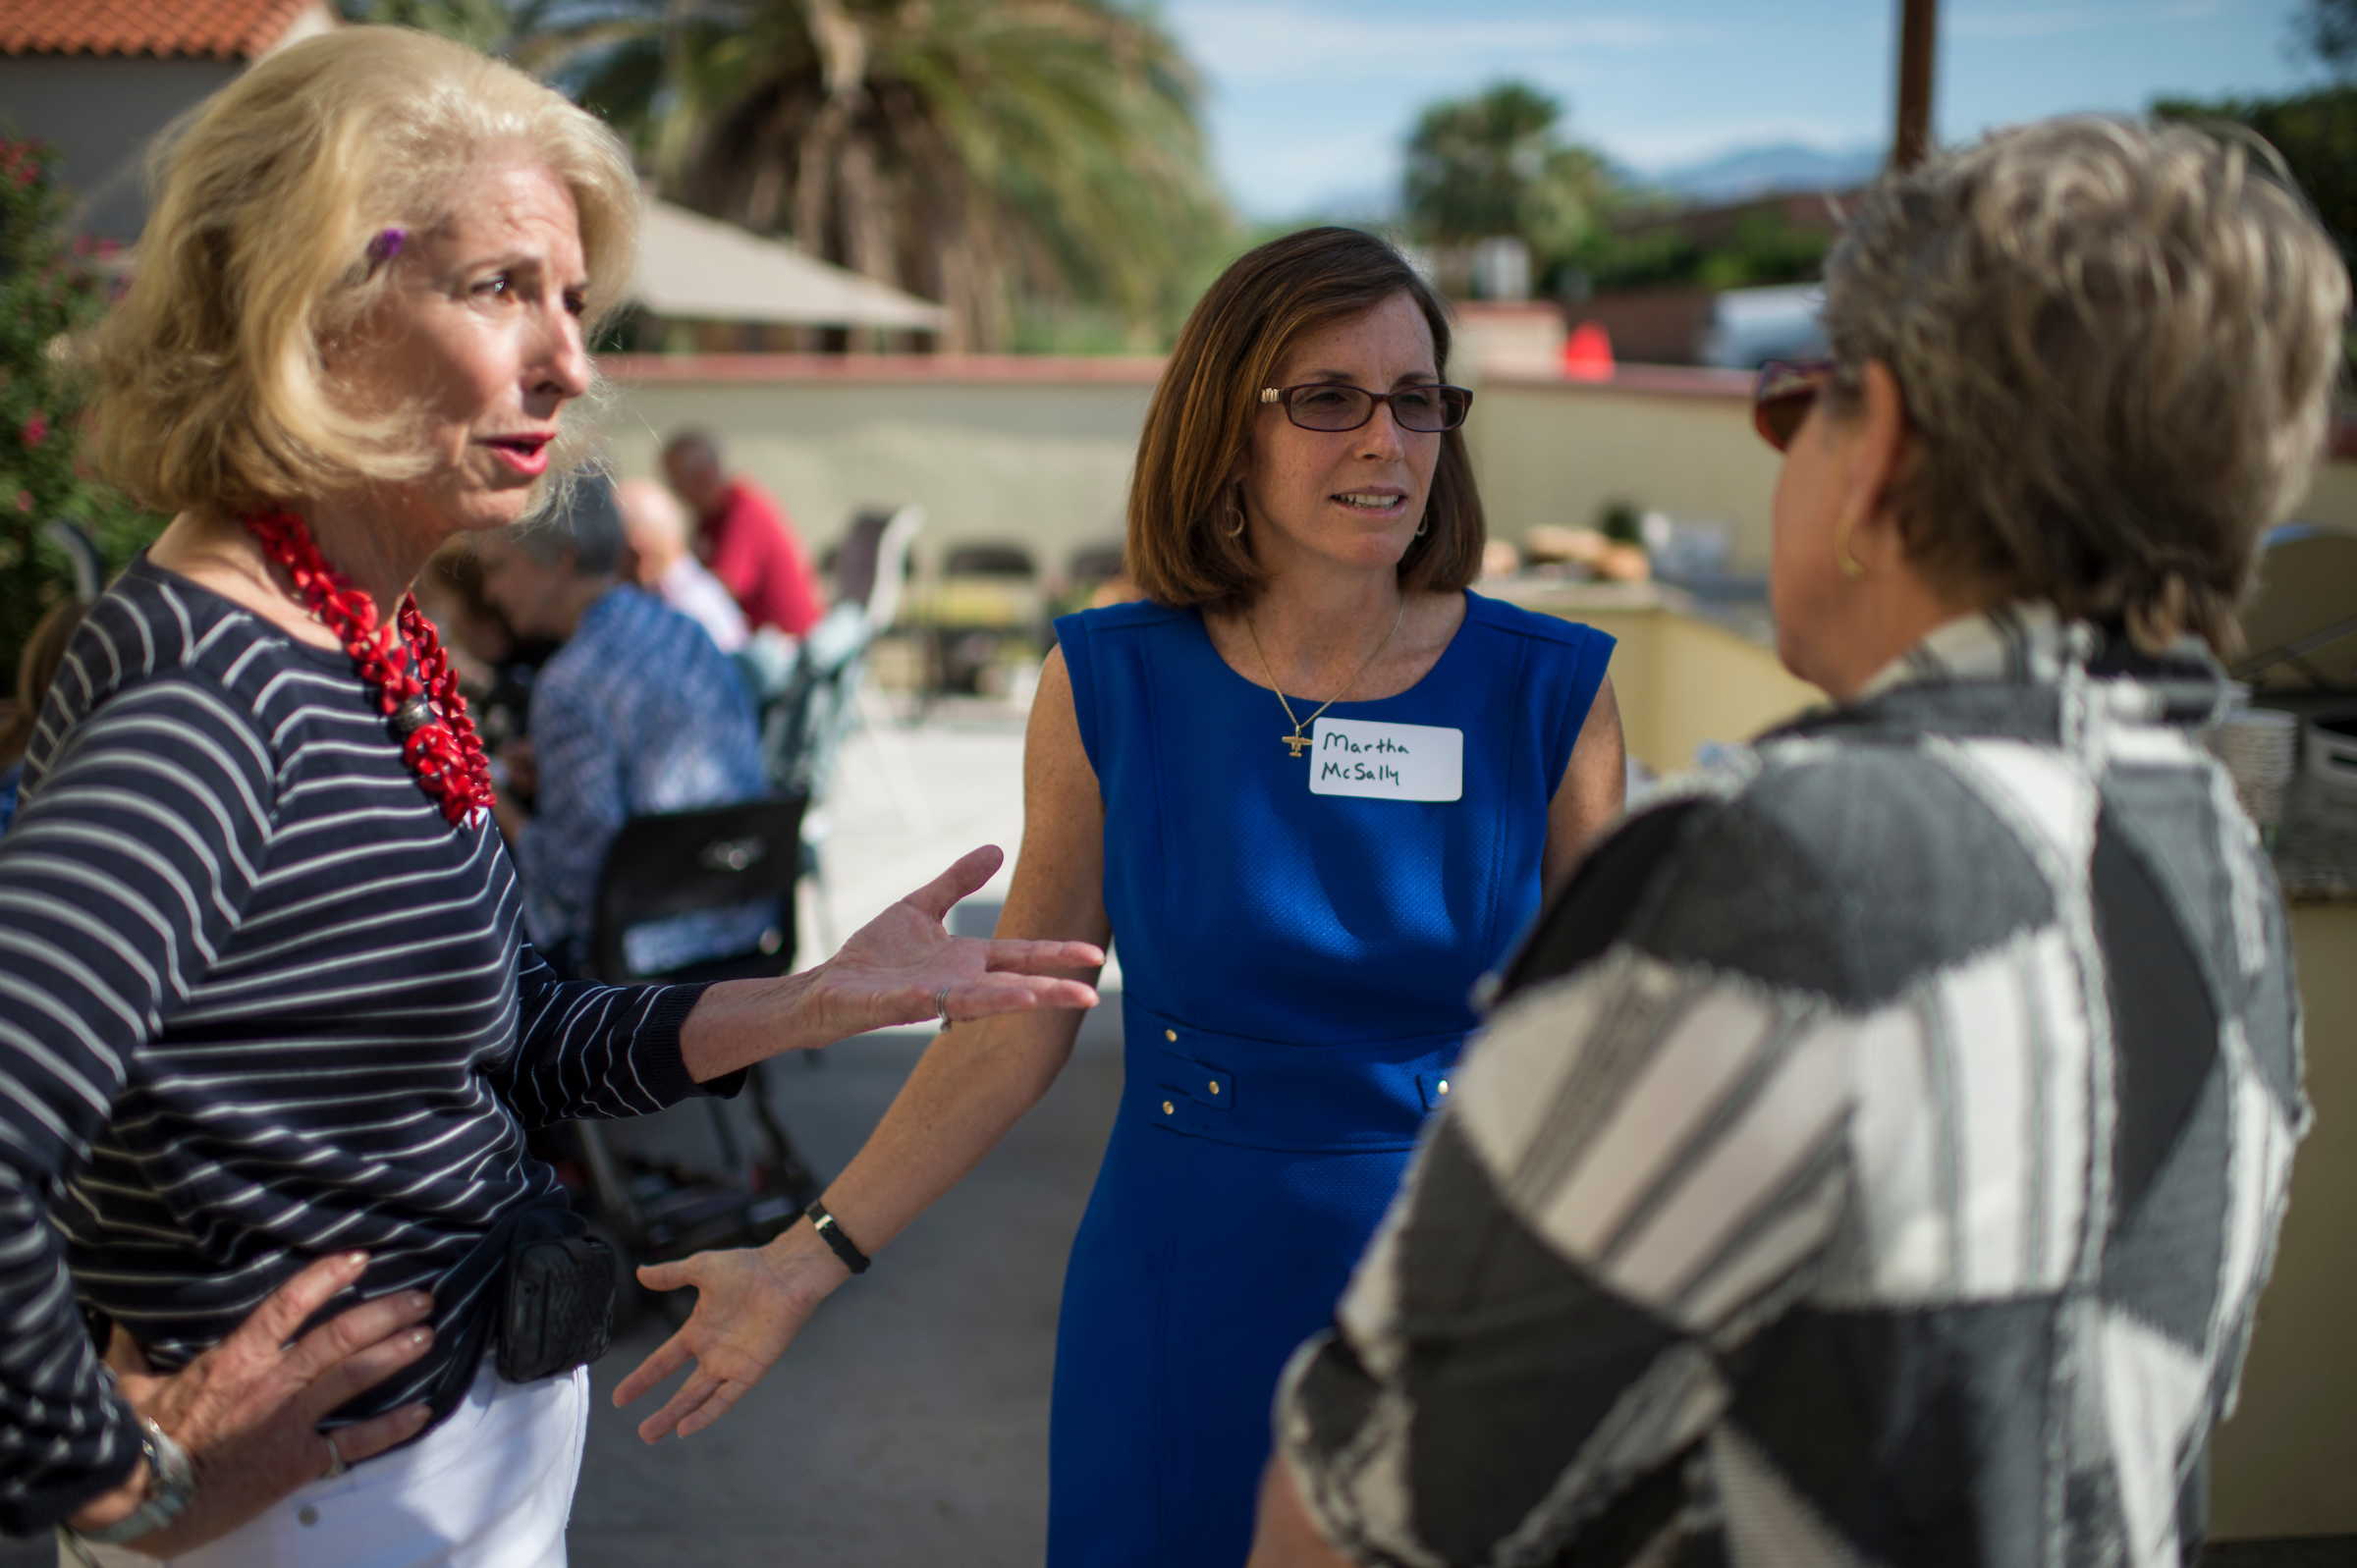 Martha McSally, Republican candidate running against Rep. Ron Barber in Arizona's 2nd Congressional district, speaks with supporters at a breakfast in Tucson, Ariz., on Saturday, Aug. 9, 2014. (Bill Clark/CQ Roll Call)